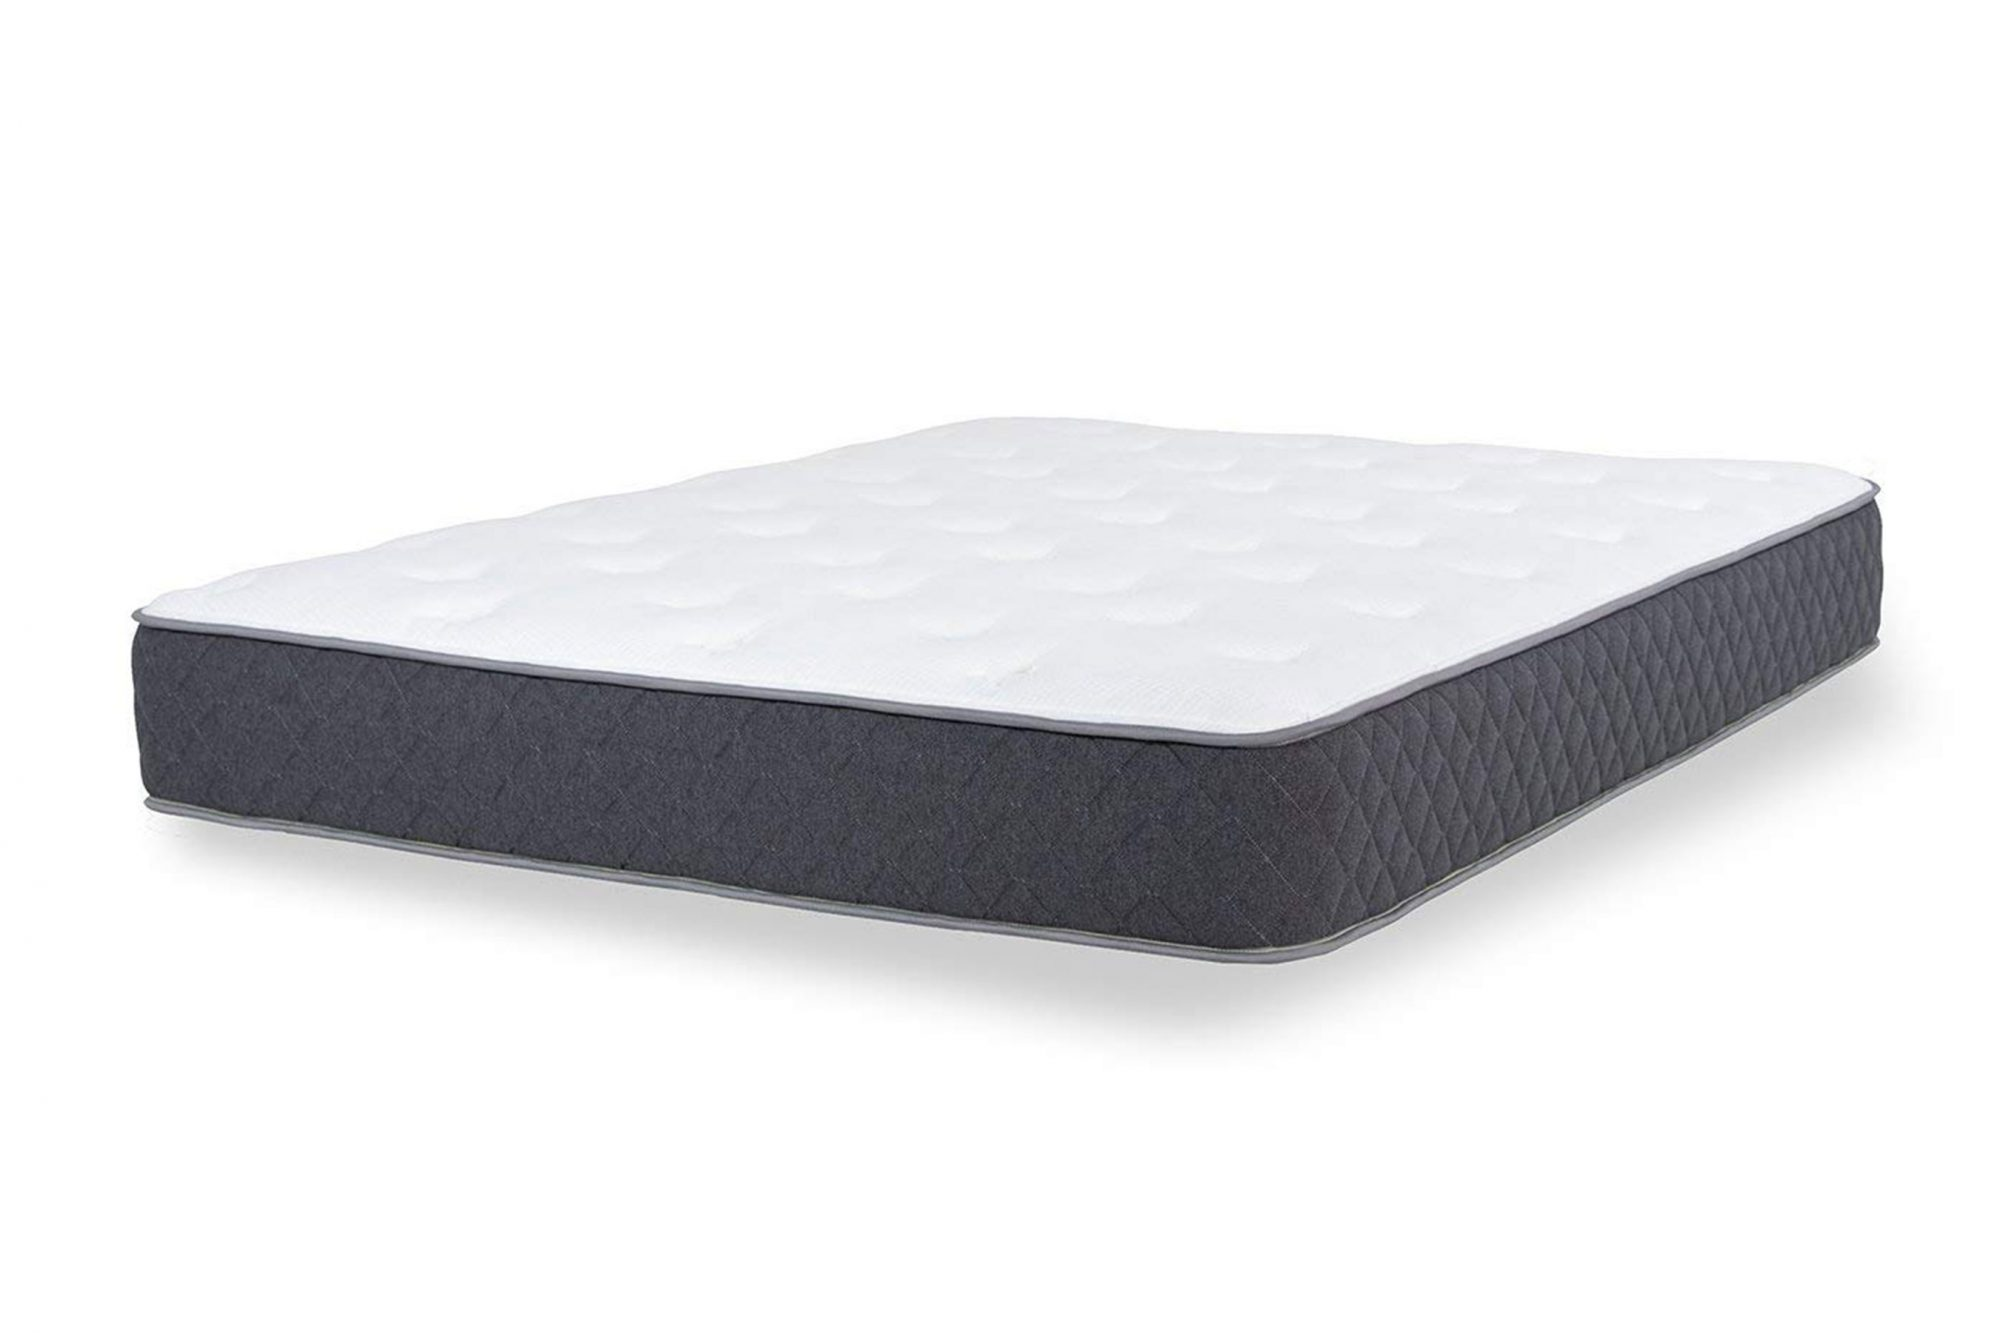 ECOMM mattress guide